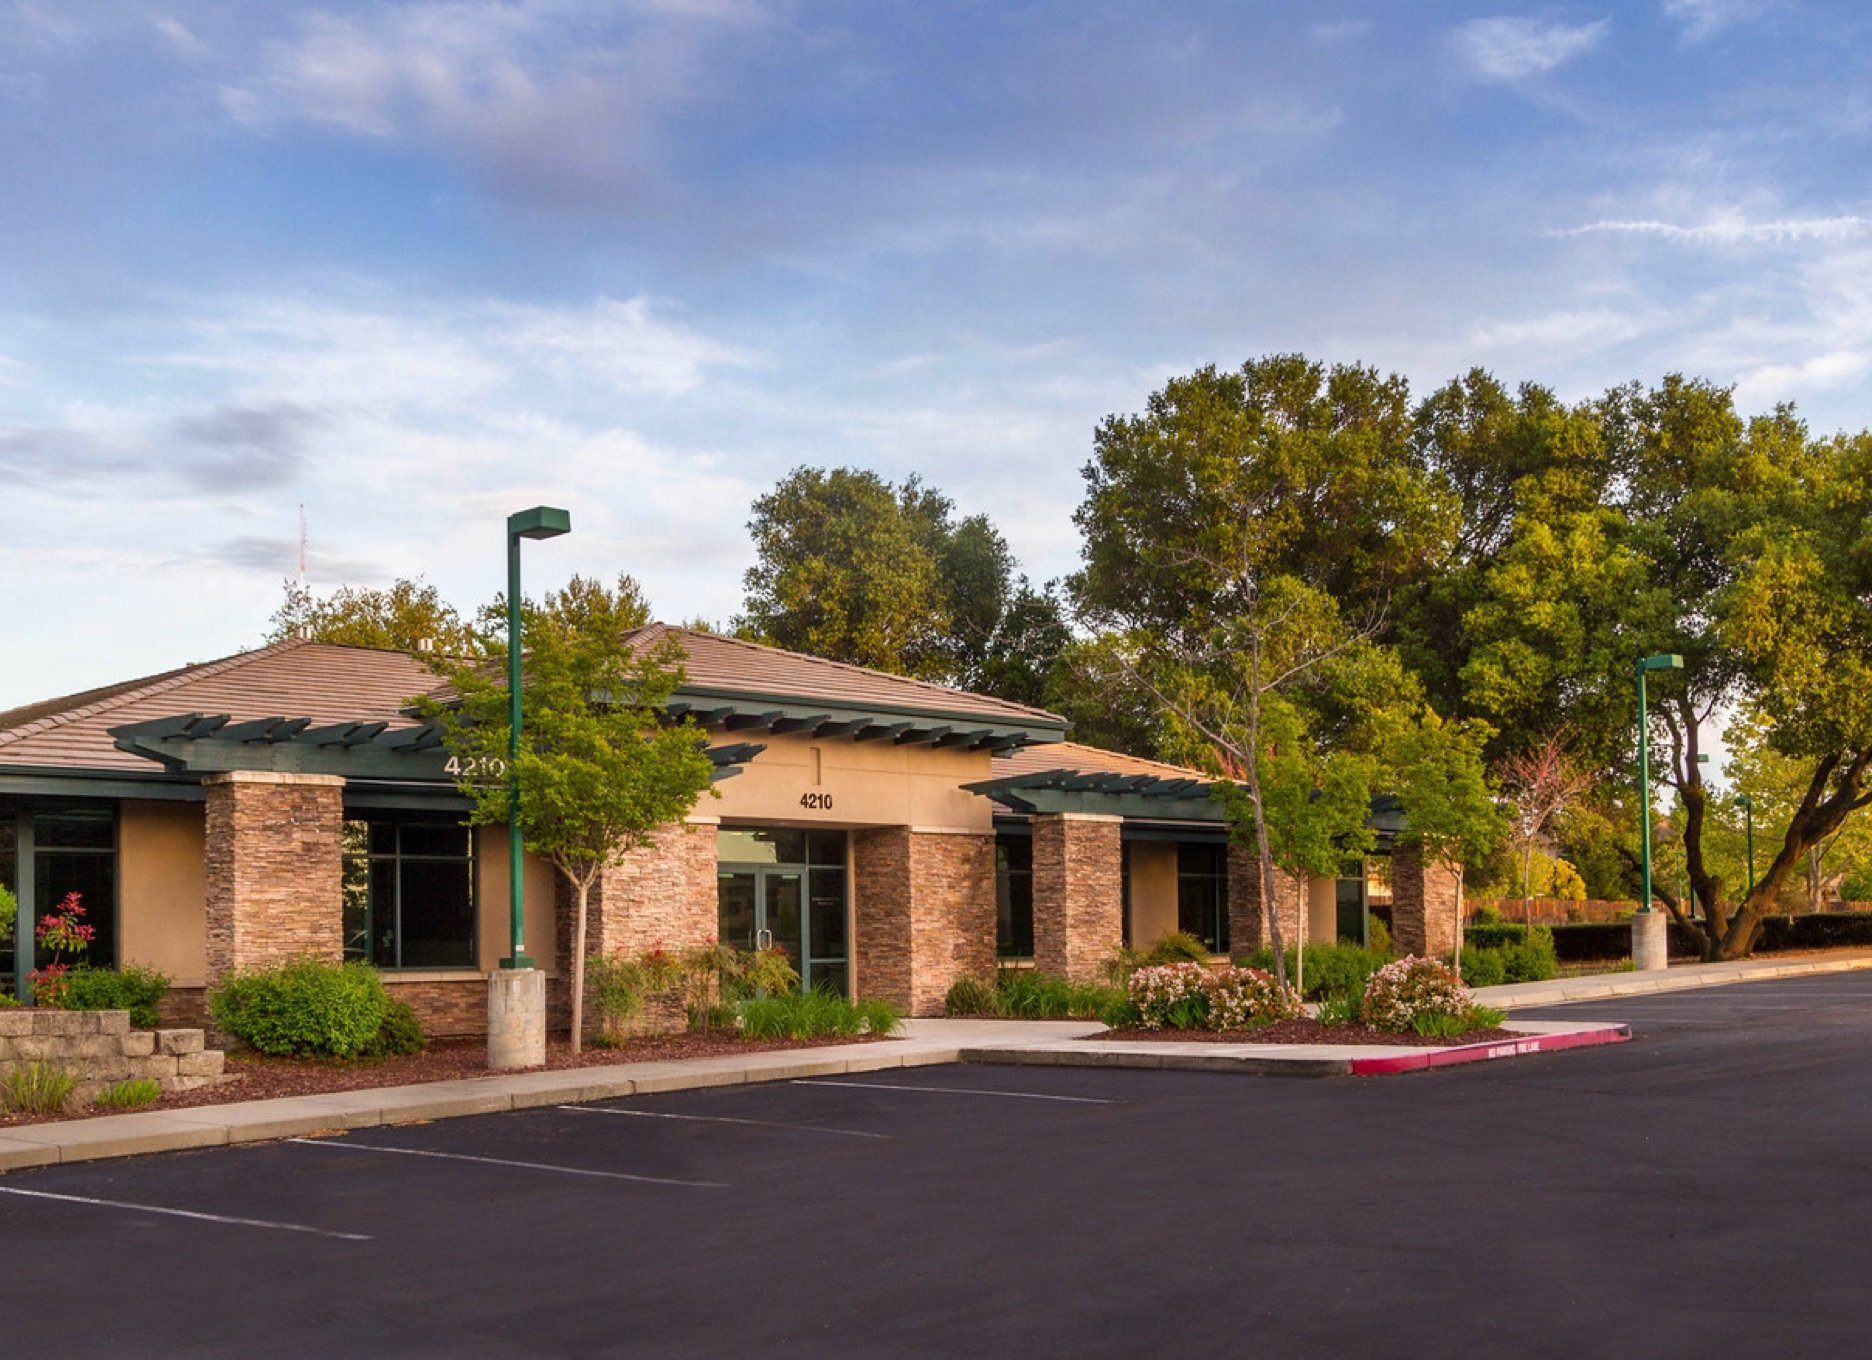 herrig and vogt office roseville